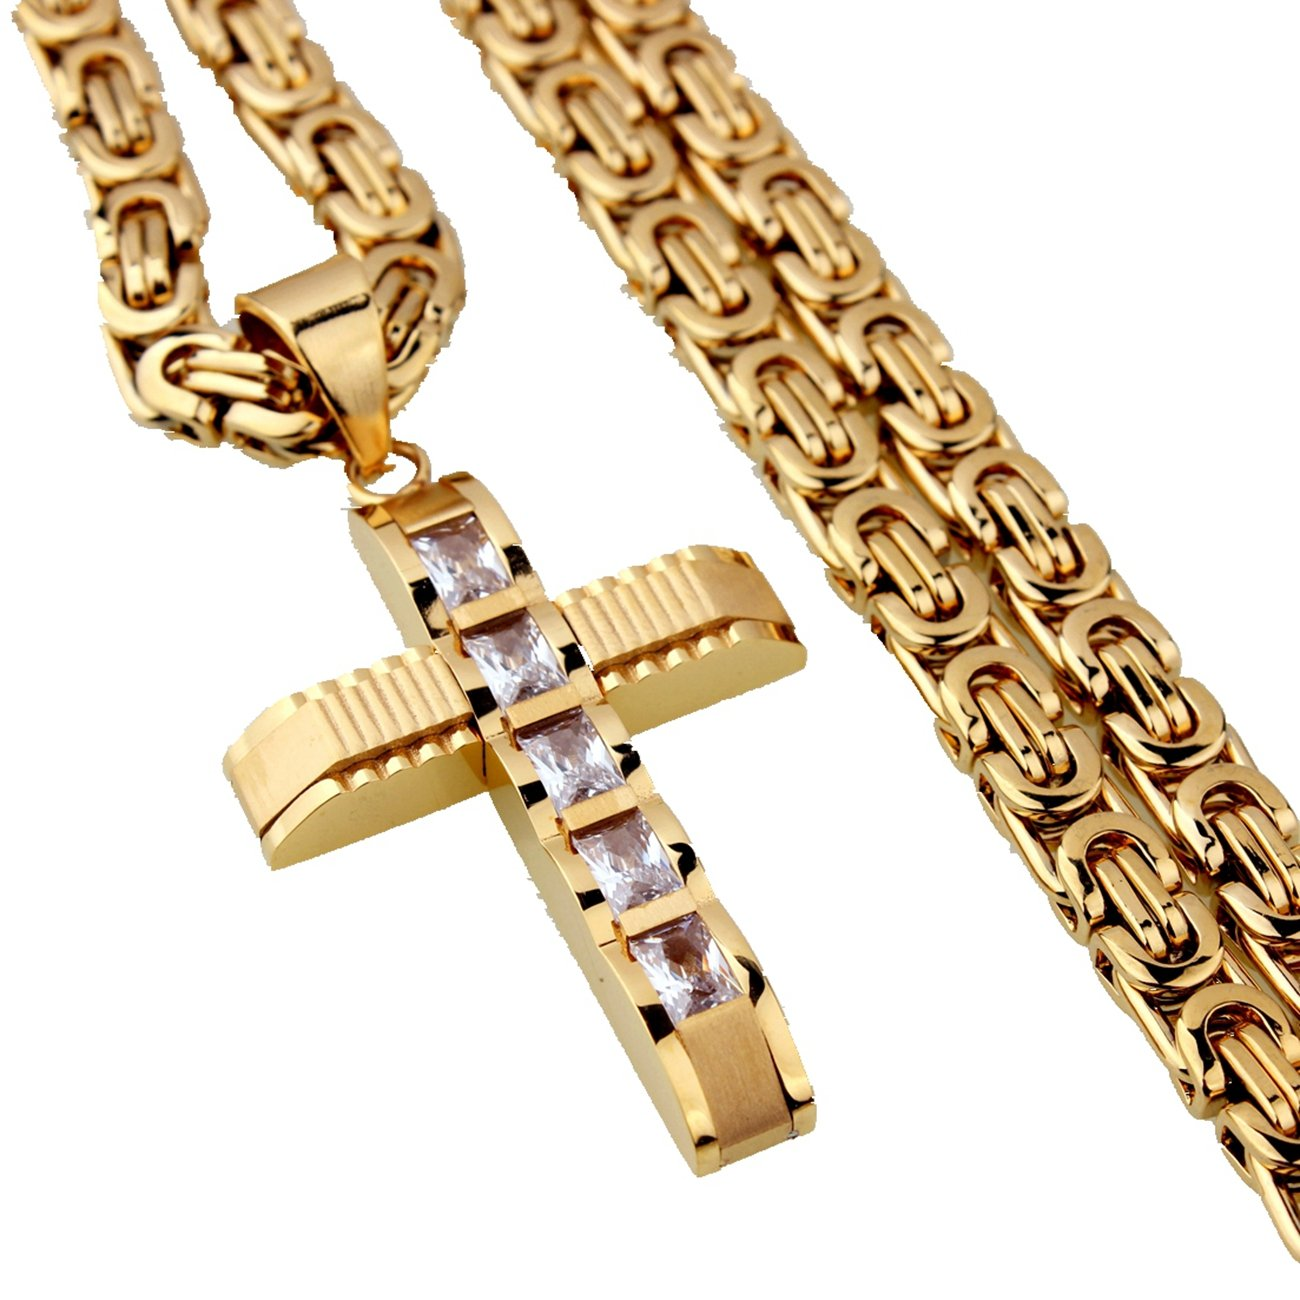 Stainless Steel Cross Pendant Mens Gold Tone Jewelry 6mm Byzantine Chain Necklace,20-34